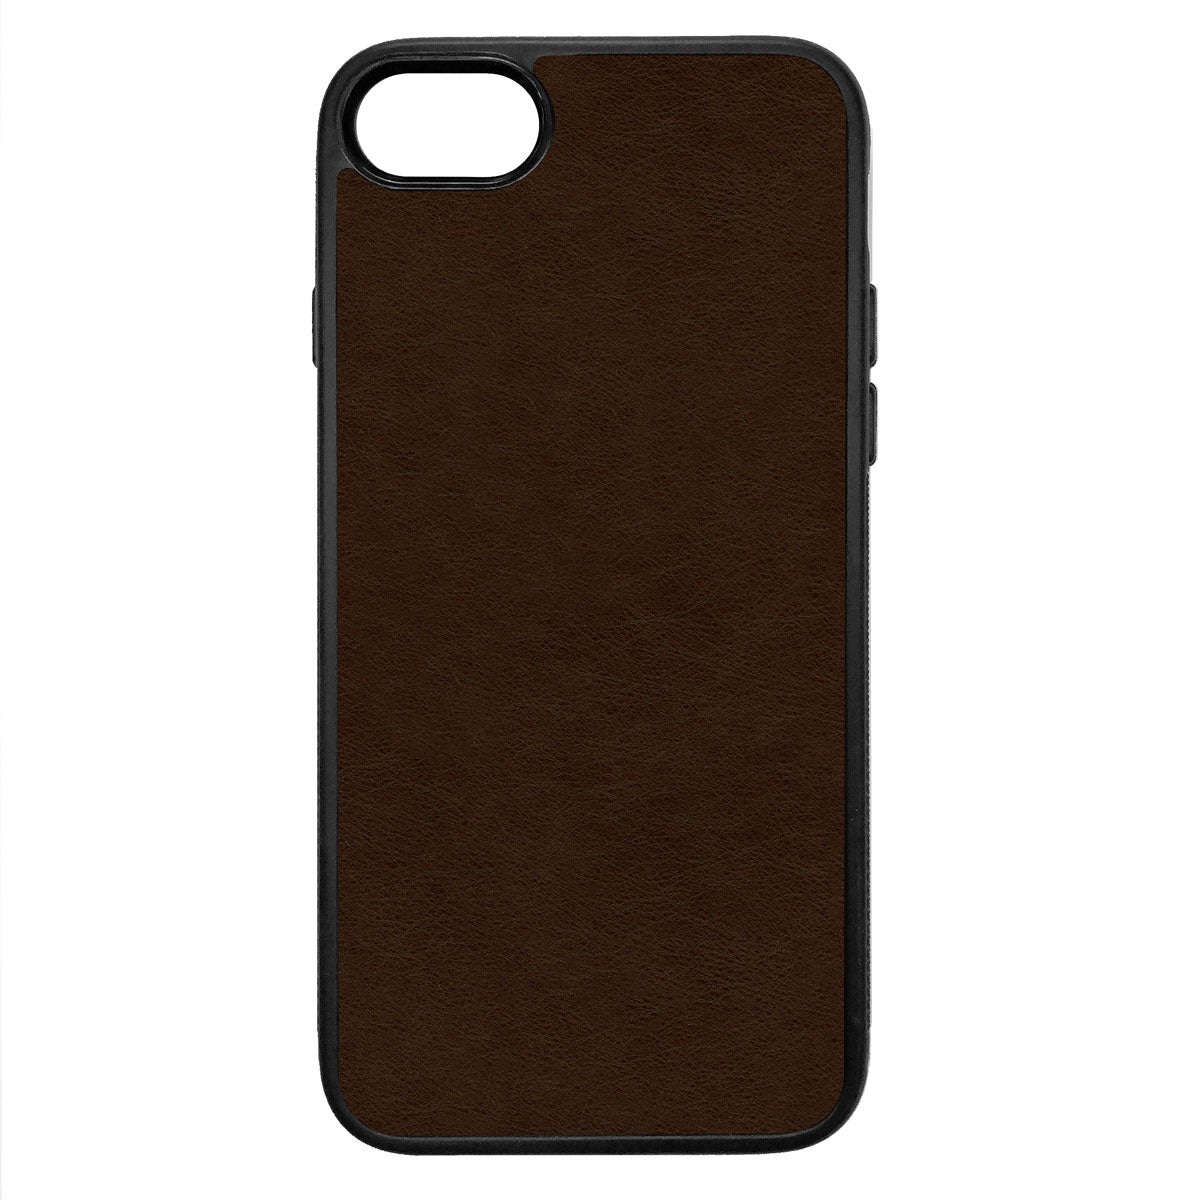 Espresso iPhone 8 Leather Case